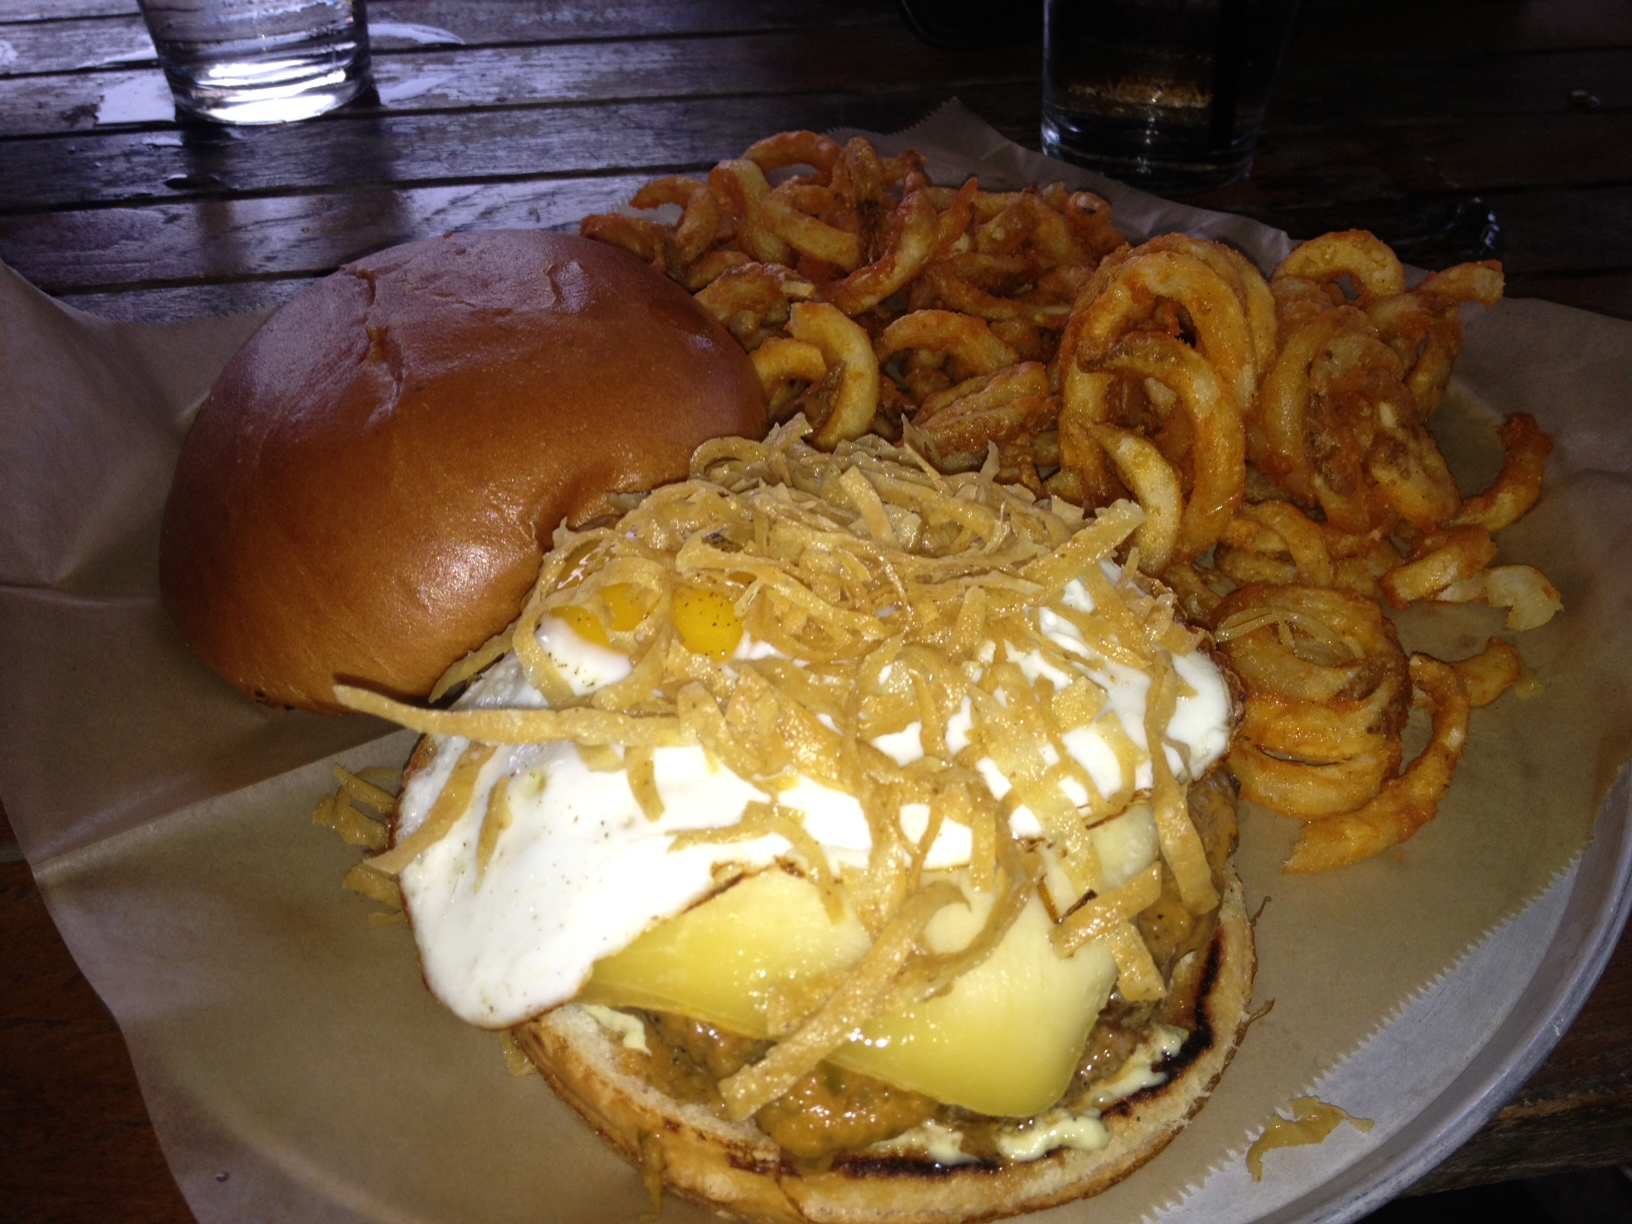 The Huevos Rancheros Burger! Yes, that is a fried egg on that burger.